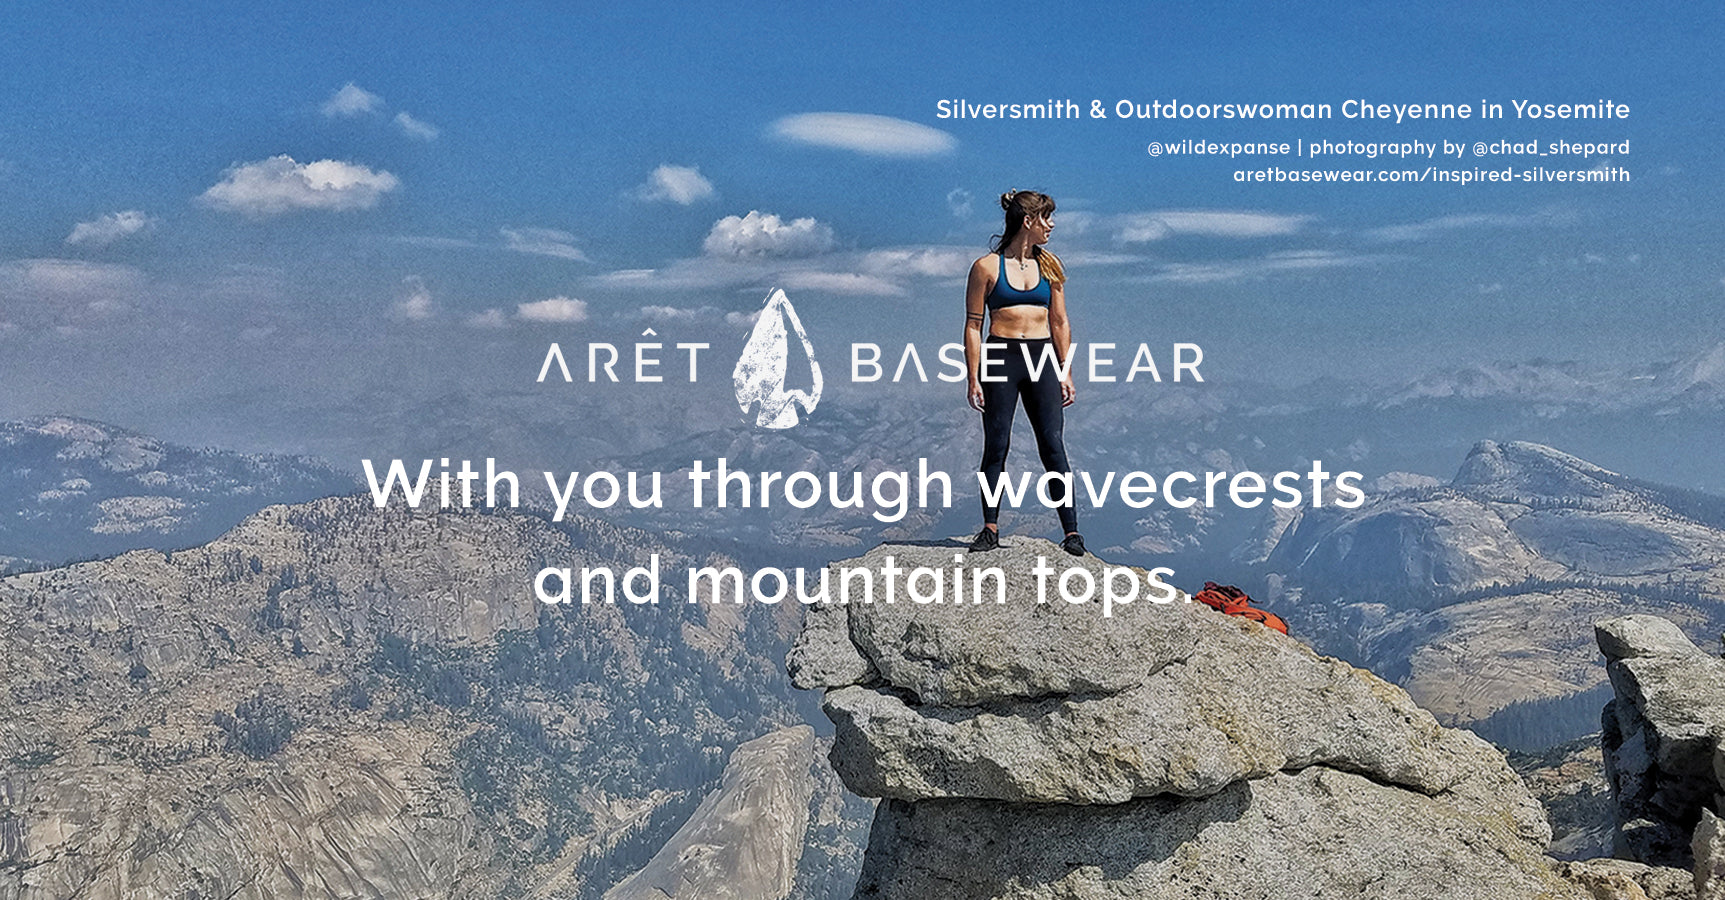 Arêt Basewear is with you through wavecrests and mountain tops